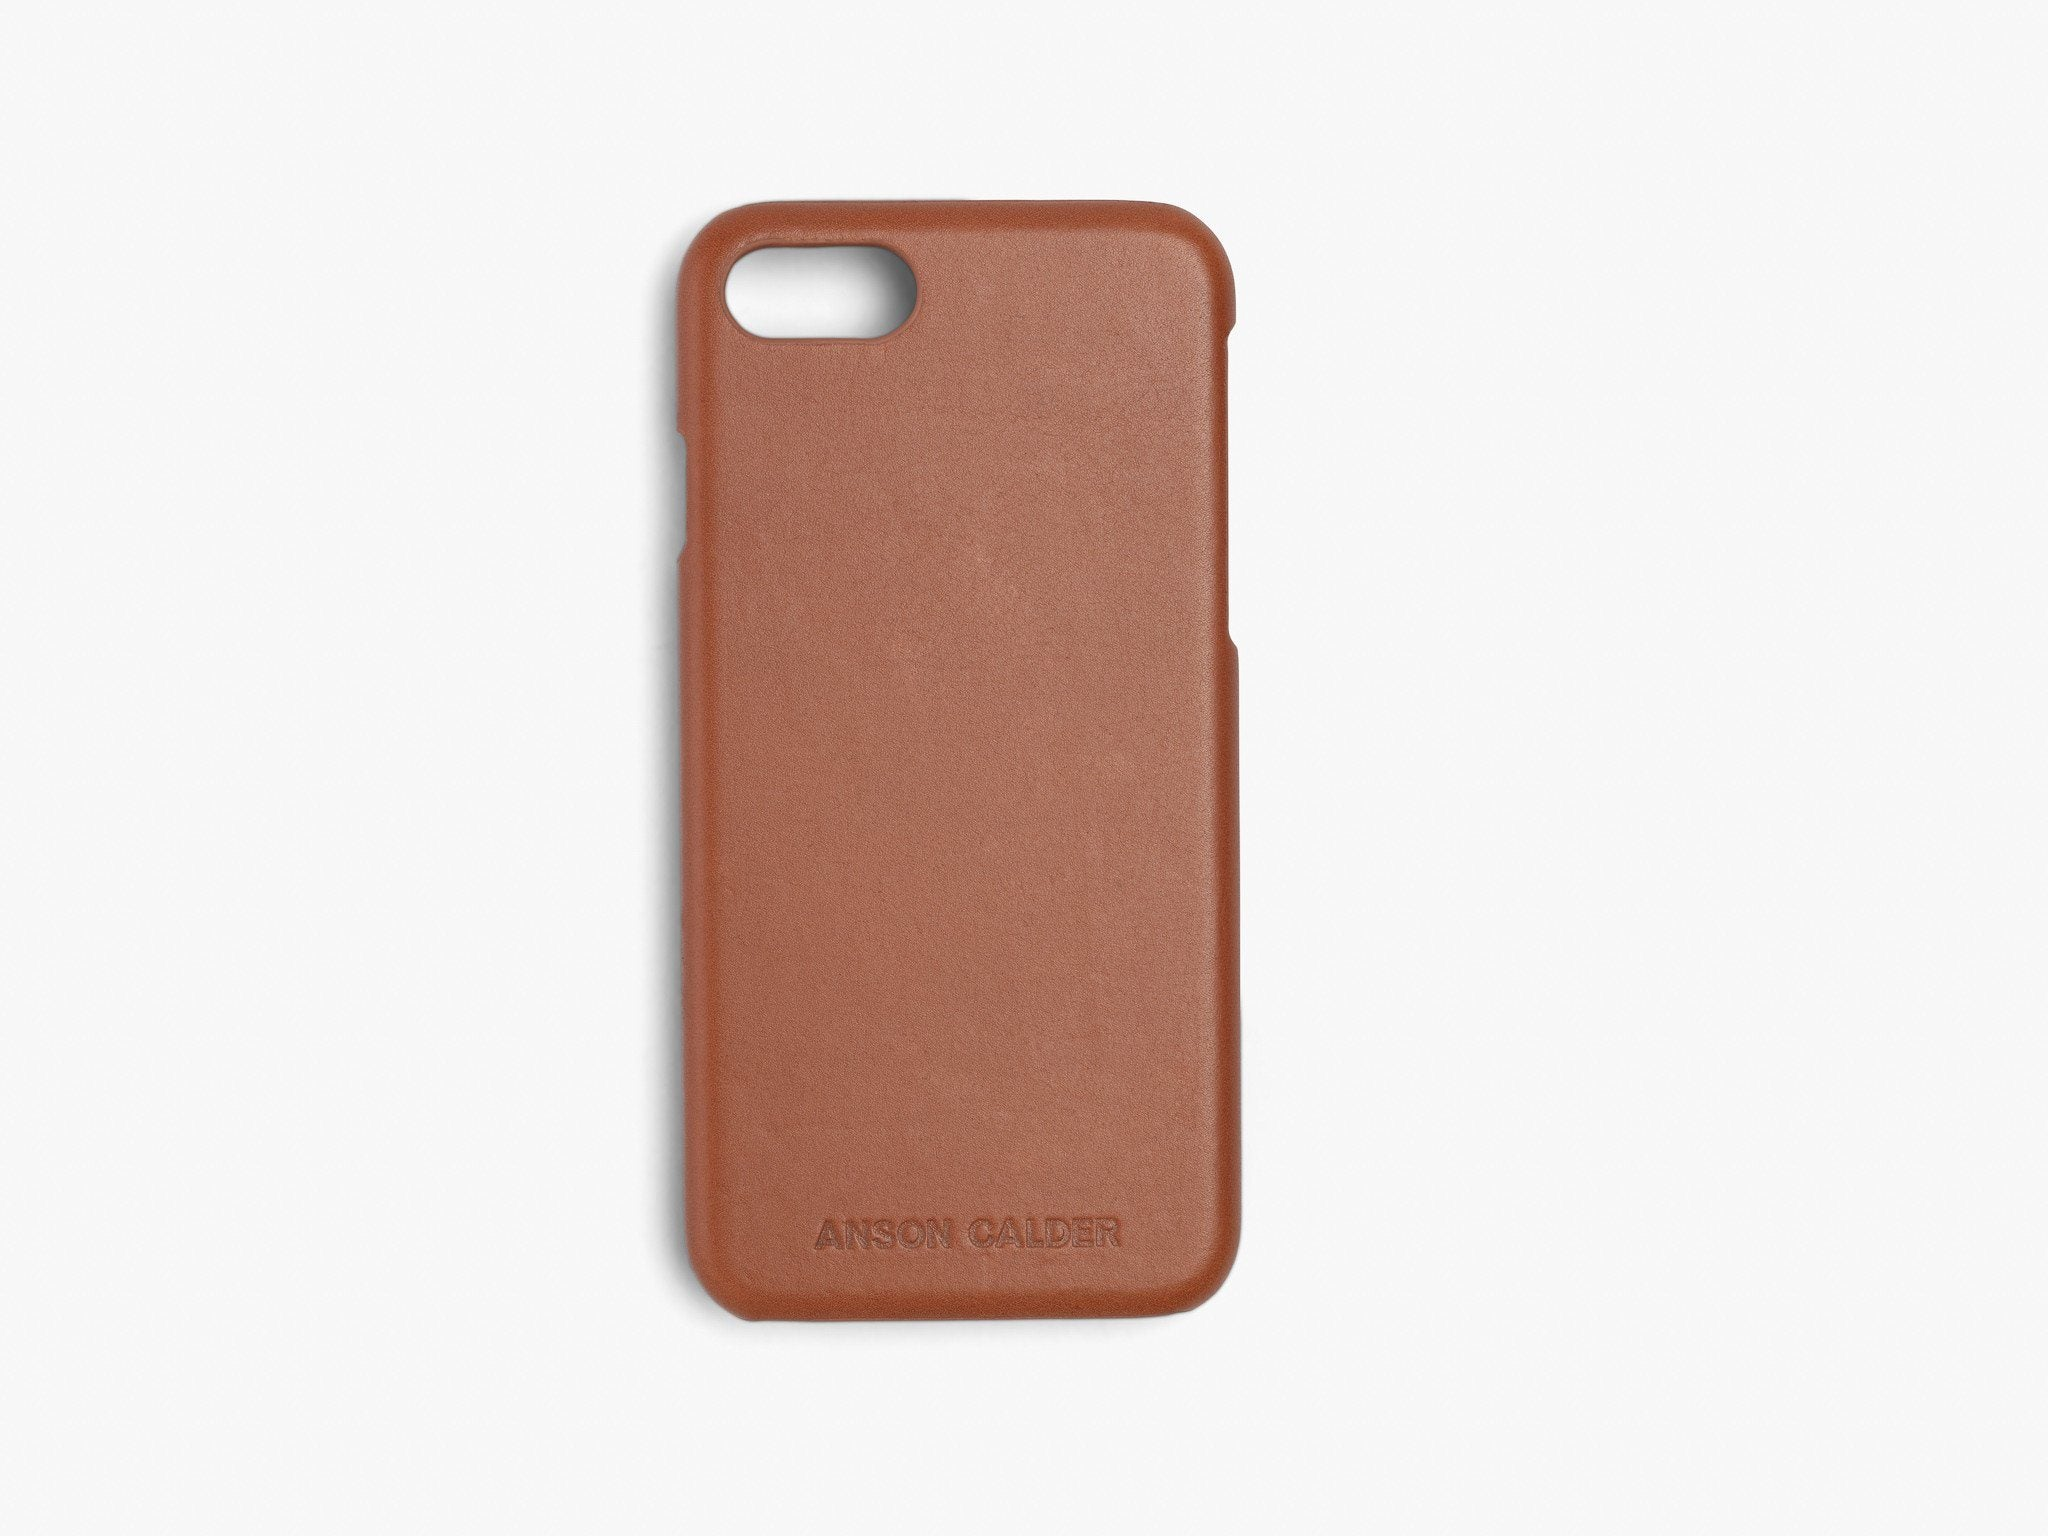 CALFSKIN iPHONE CASE CASES ANSON CALDER iPhone 6 / 6S _Cognac